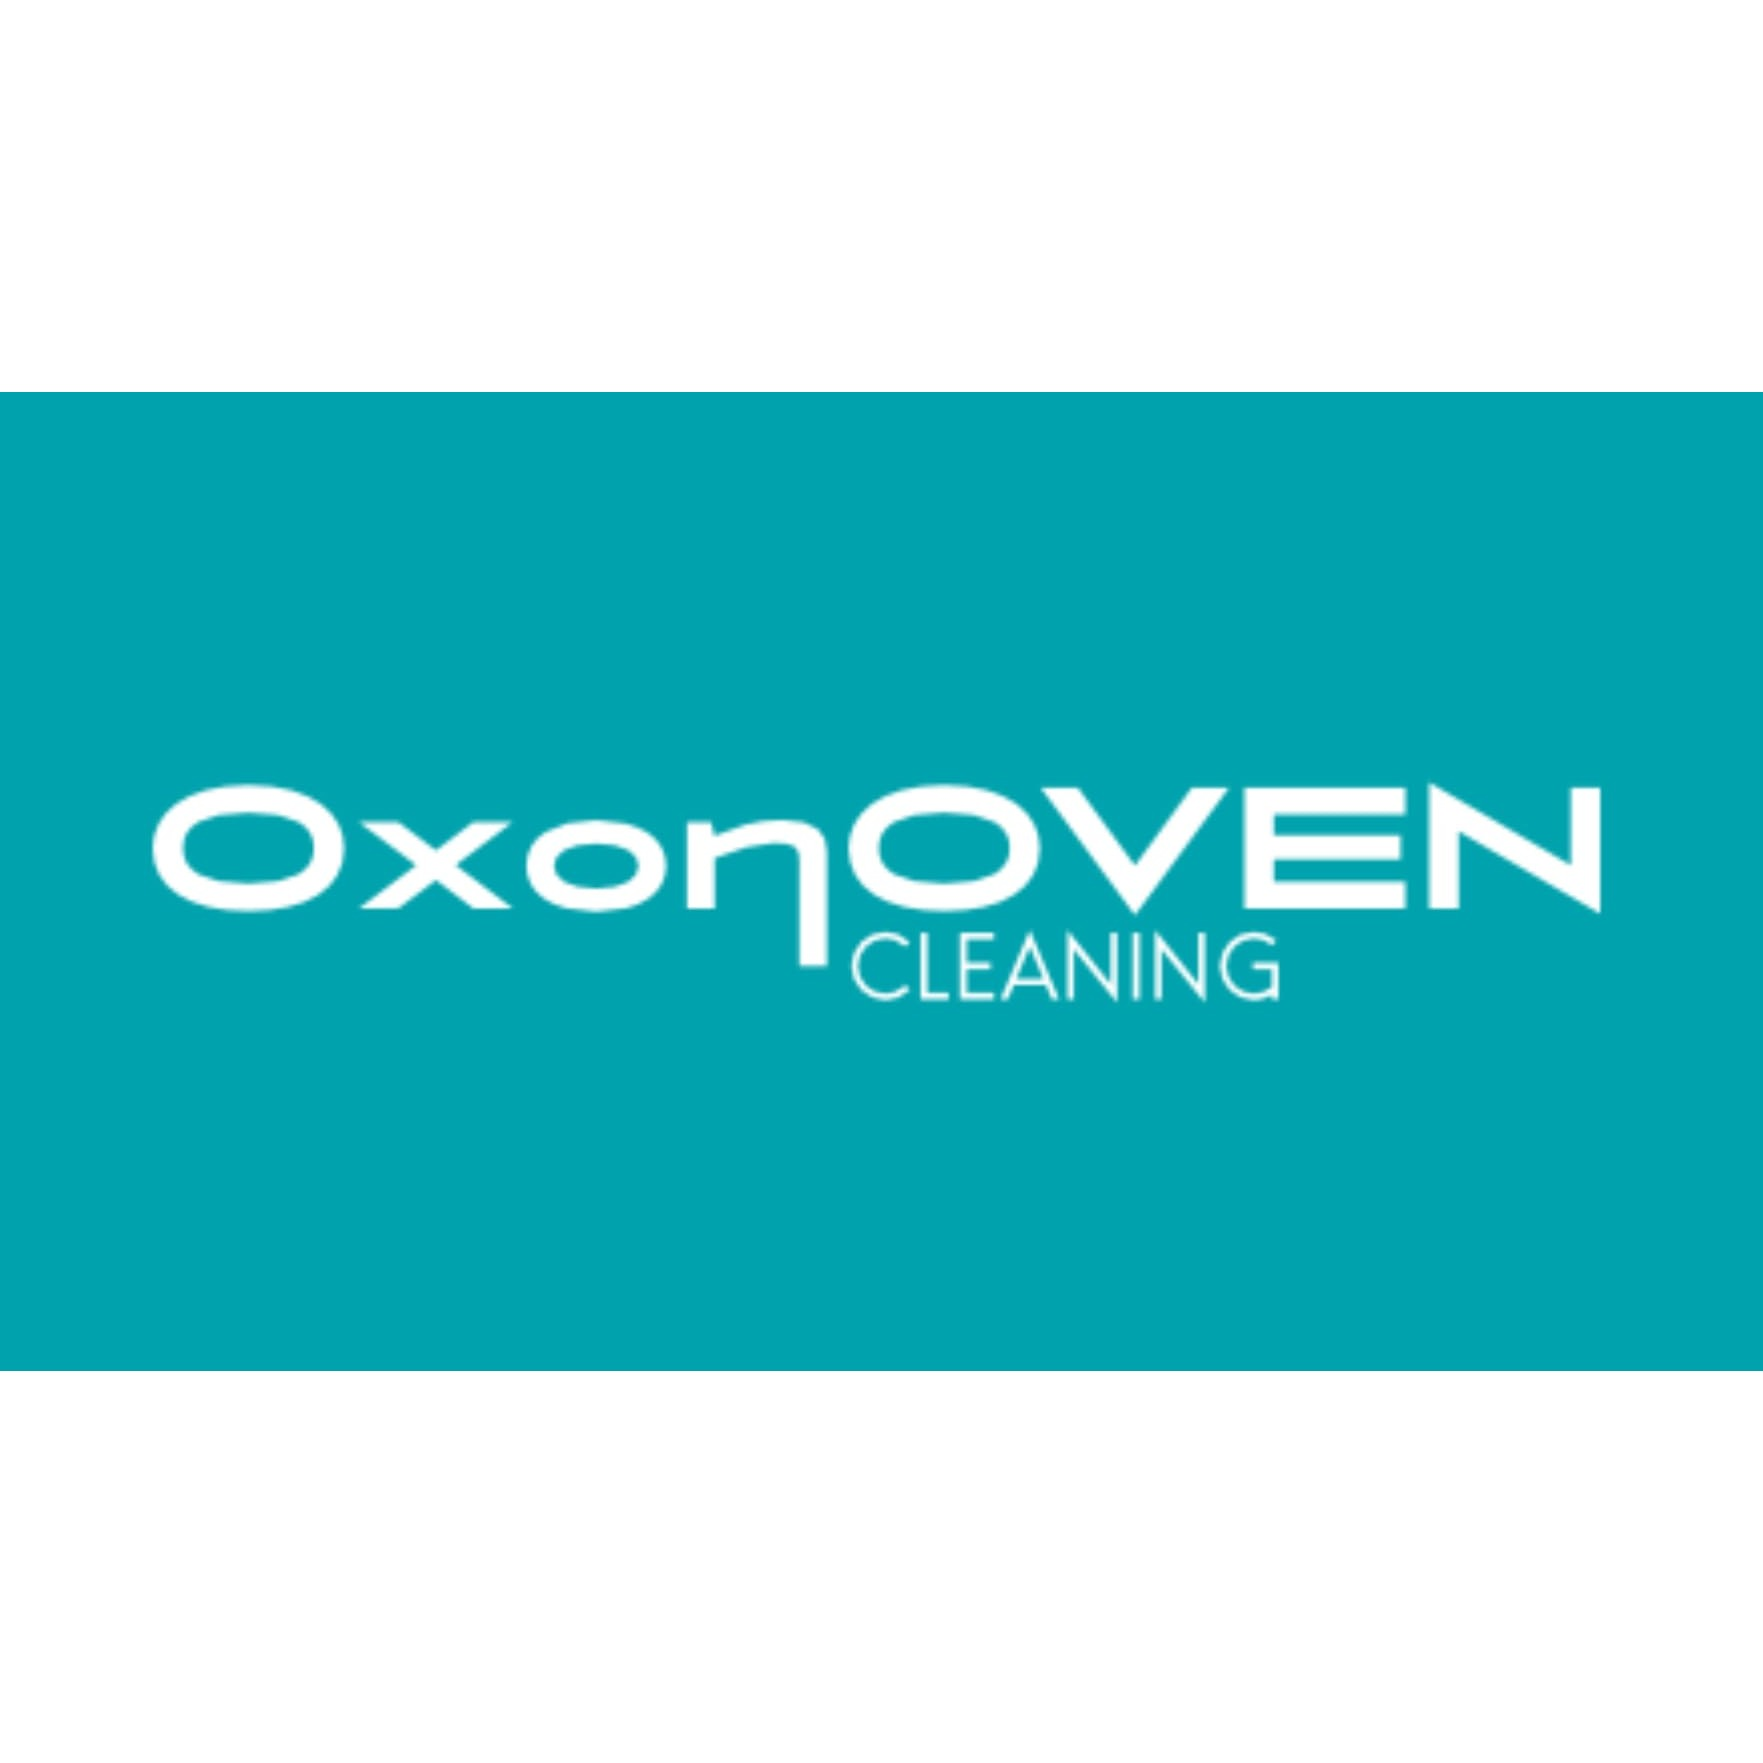 Oxon Oven Cleaning - Abingdon, Oxfordshire OX14 2DQ - 07806 728429 | ShowMeLocal.com